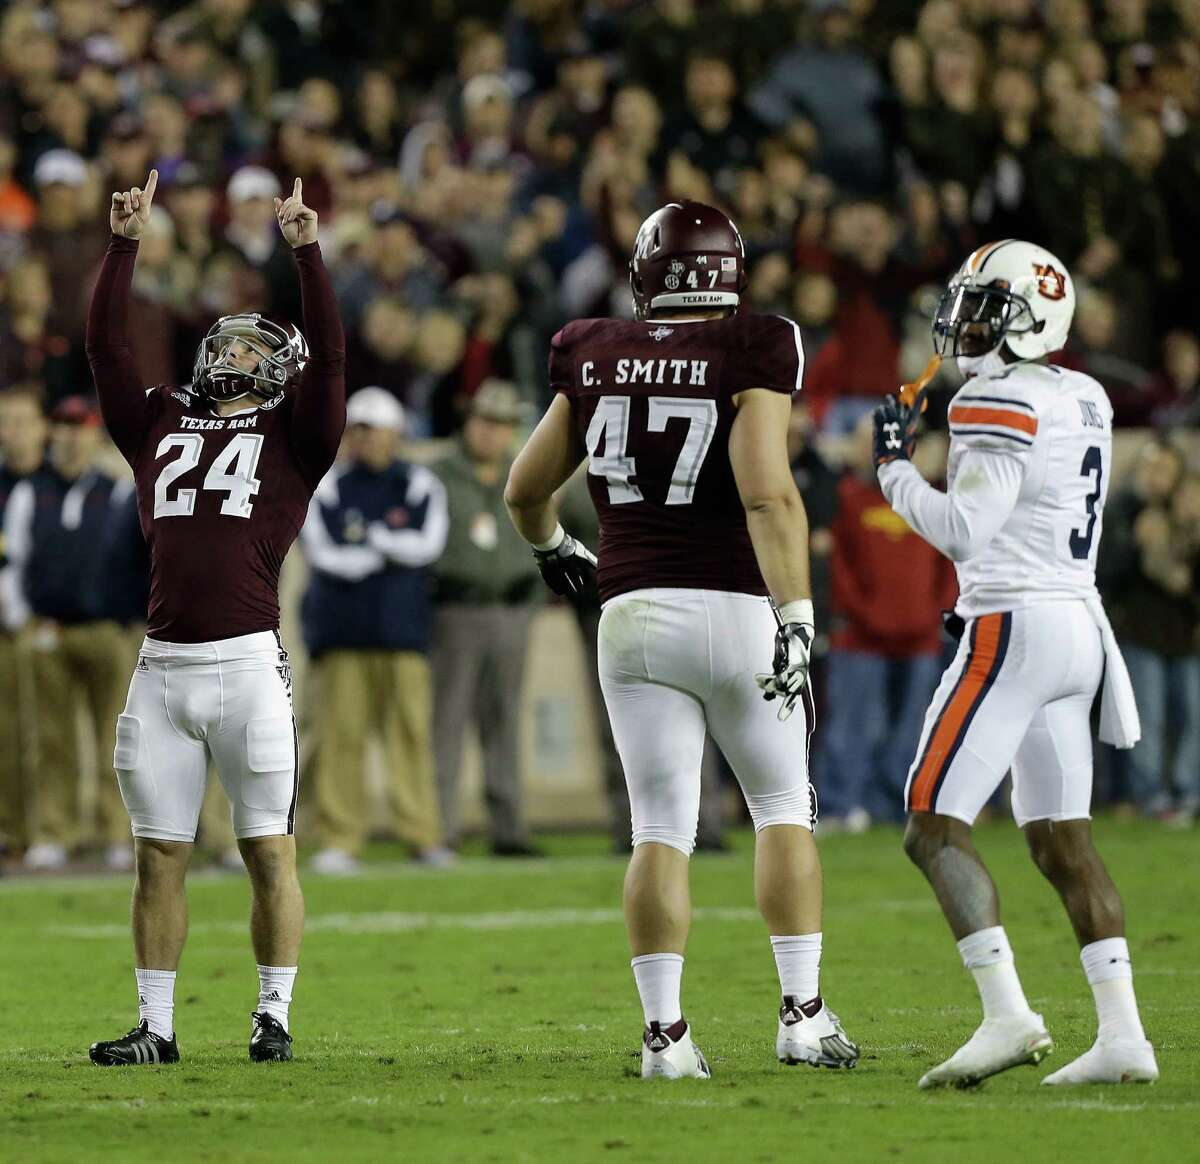 COLLEGE STATION, TX - NOVEMBER 07: Taylor Bertolet #24 of the Texas A&M Aggies celebrates after a 50 yard field goal in the first half as Caden Smith #47 and Jonathan Jones #3 of the Auburn Tigers look on at Kyle Field on November 7, 2015 in College Station, Texas. (Photo by Bob Levey/Getty Images)